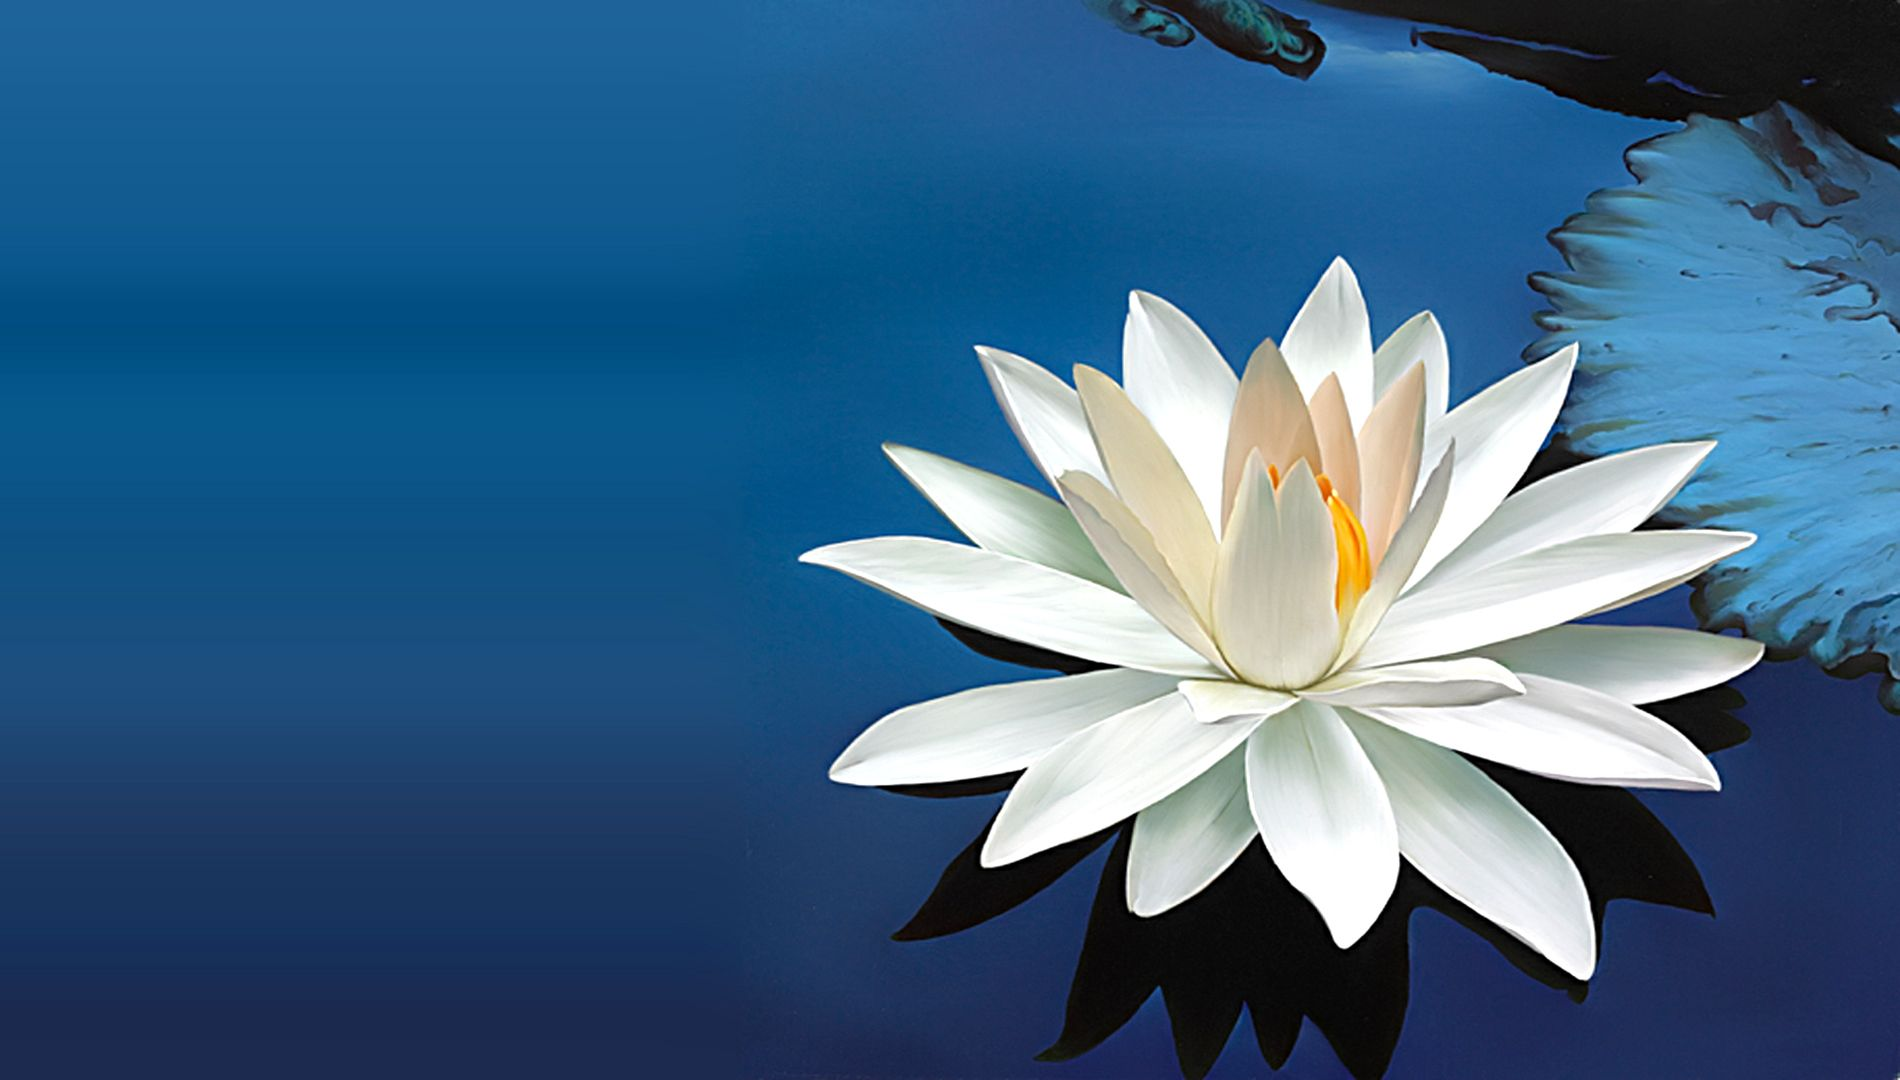 White Lotus Tarot Intuitive Life Coaching For Personal Growth And